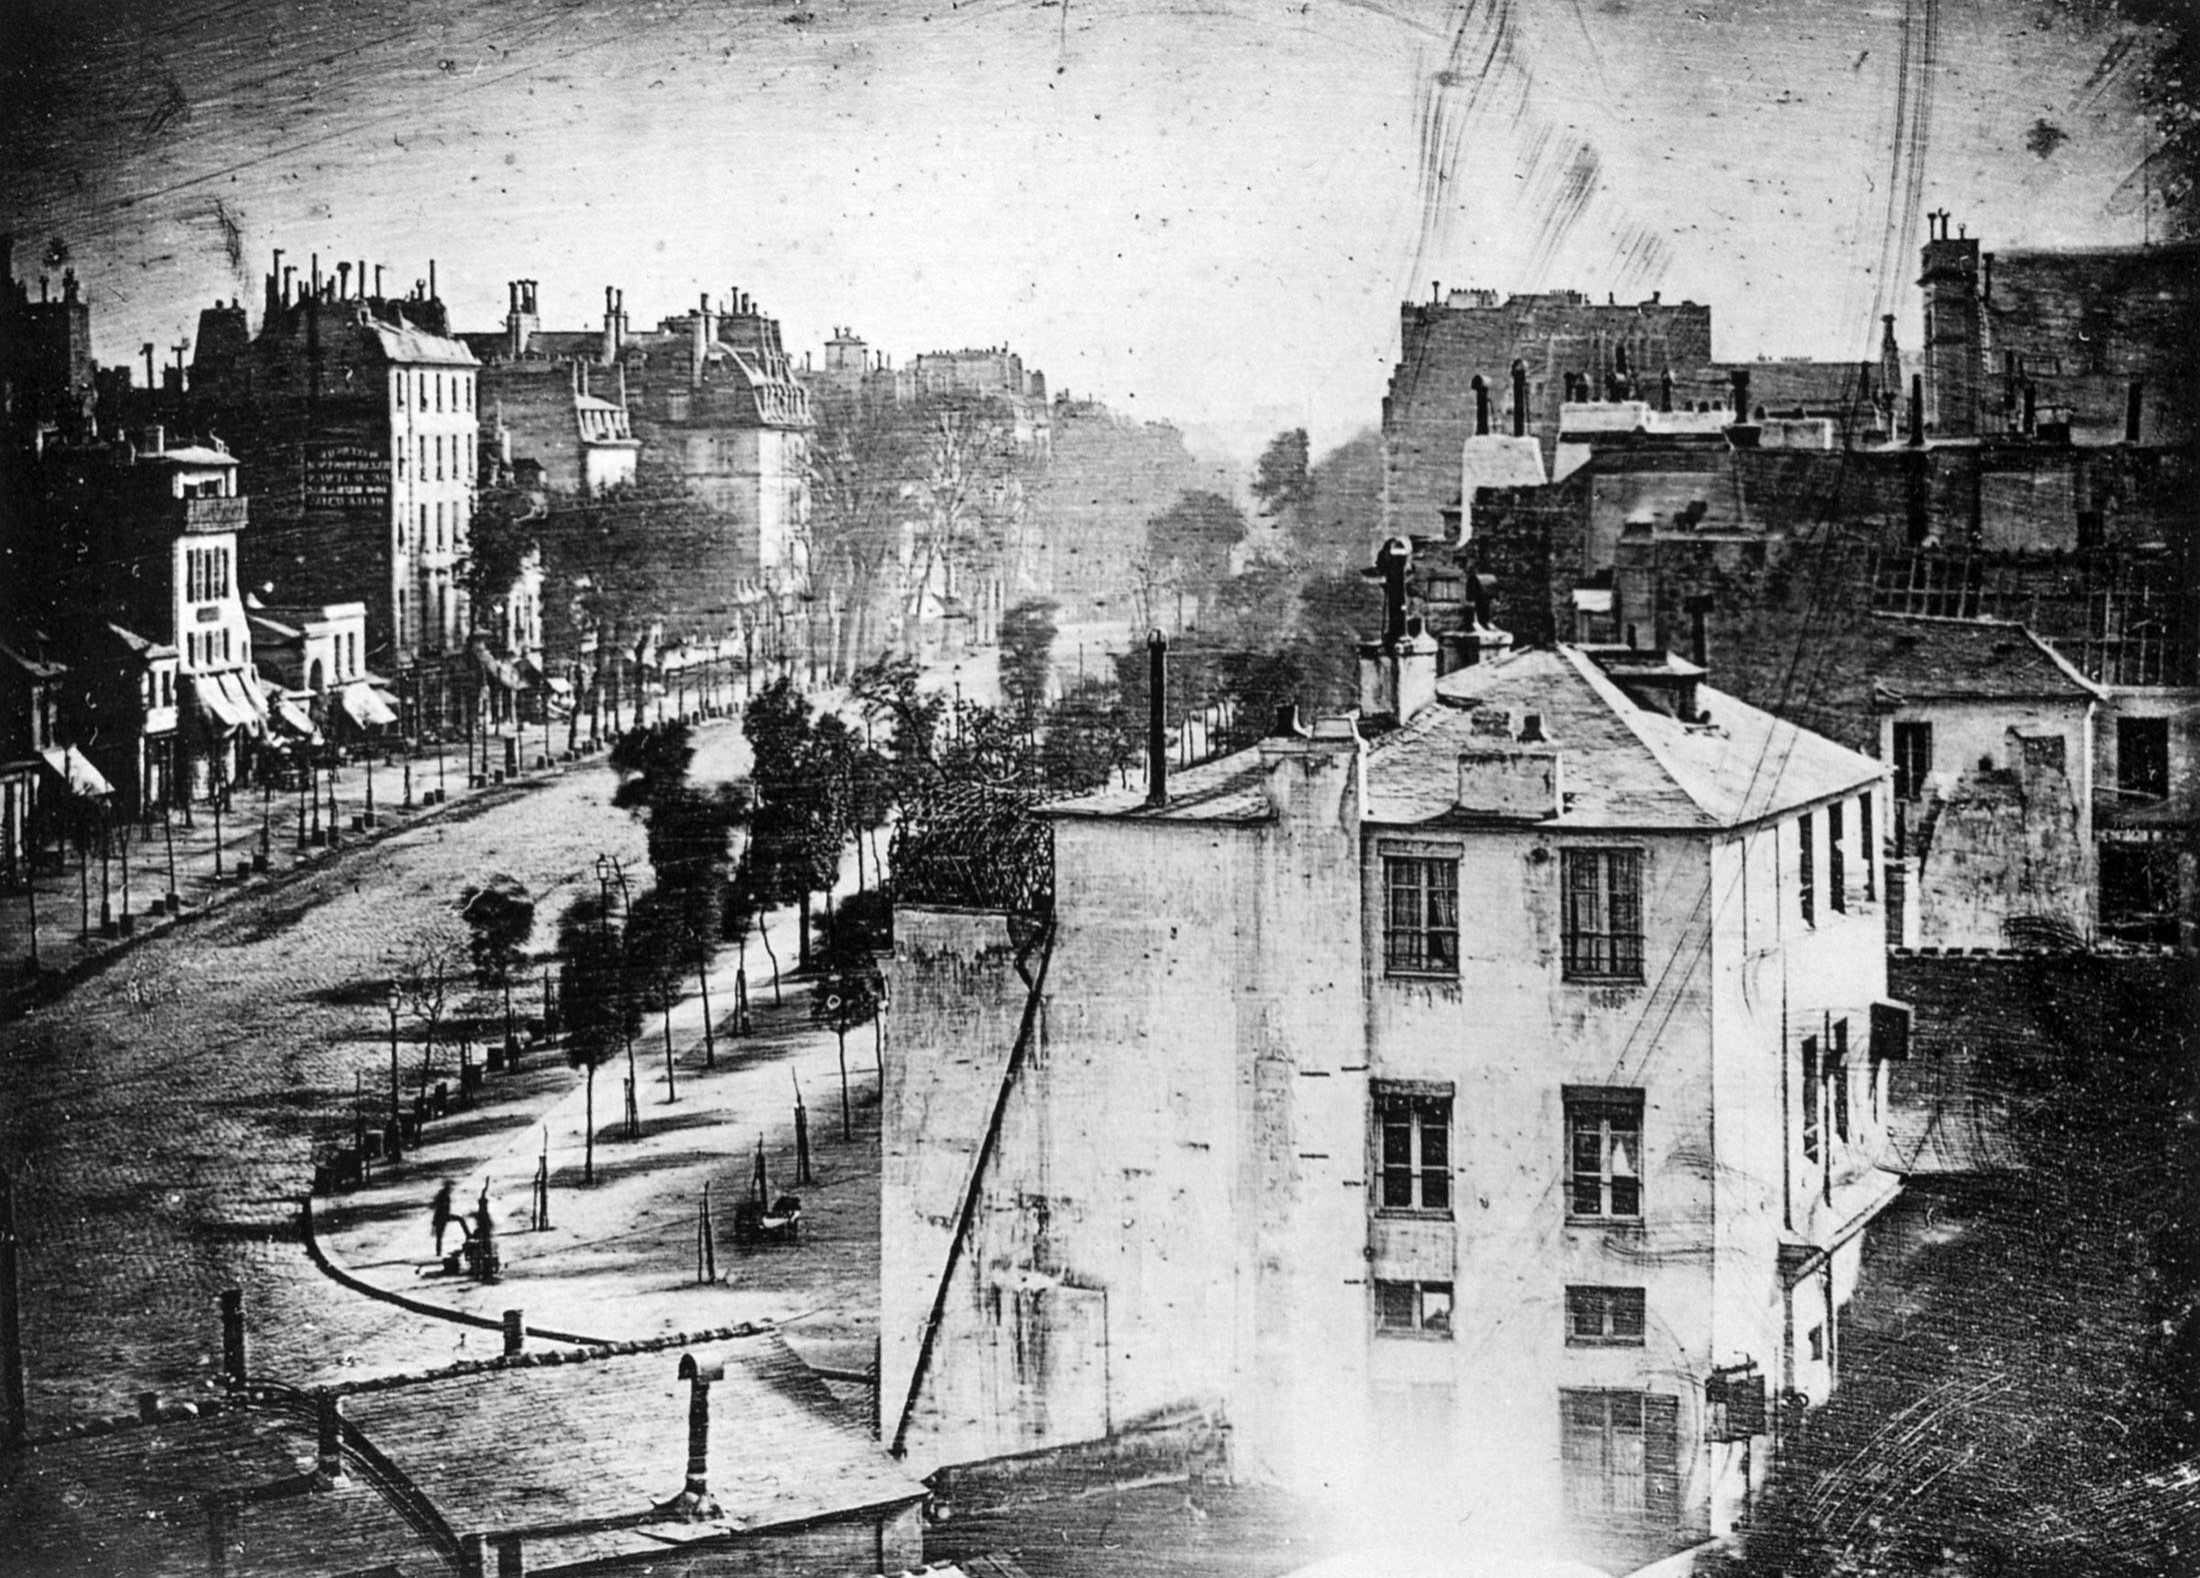 'Boulevard du Temple' by French photographer Louis Daguerre, scanned from The Photography Book, Phaidon Press, London, 1997. (via WIKIMEDIA COMMONS)